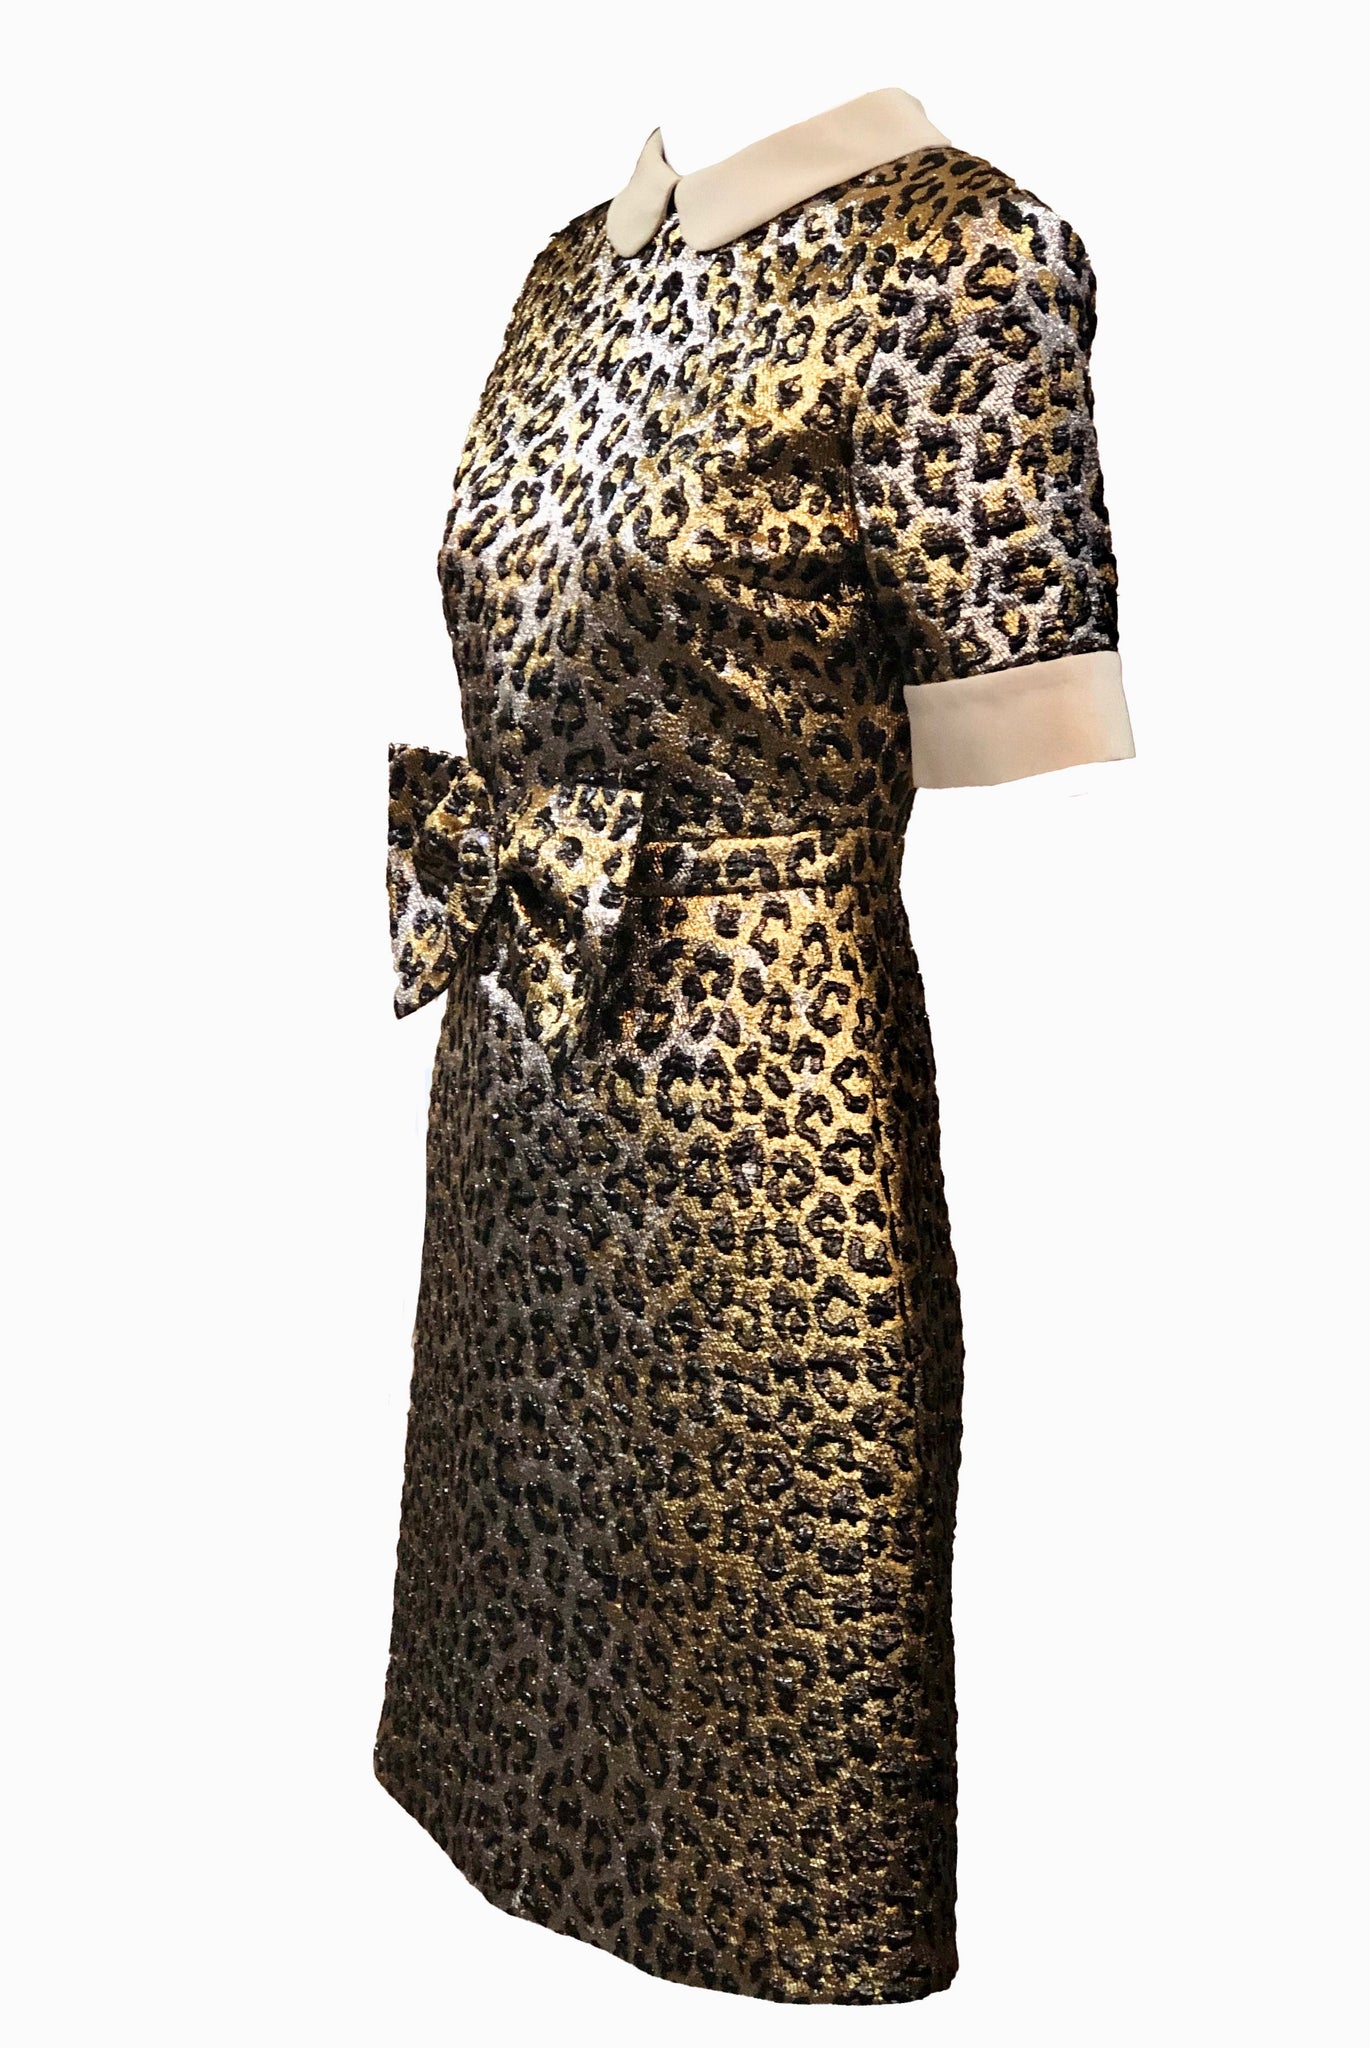 Gucci 2017 Gold Lame Leopard Dress Side 3 of 6